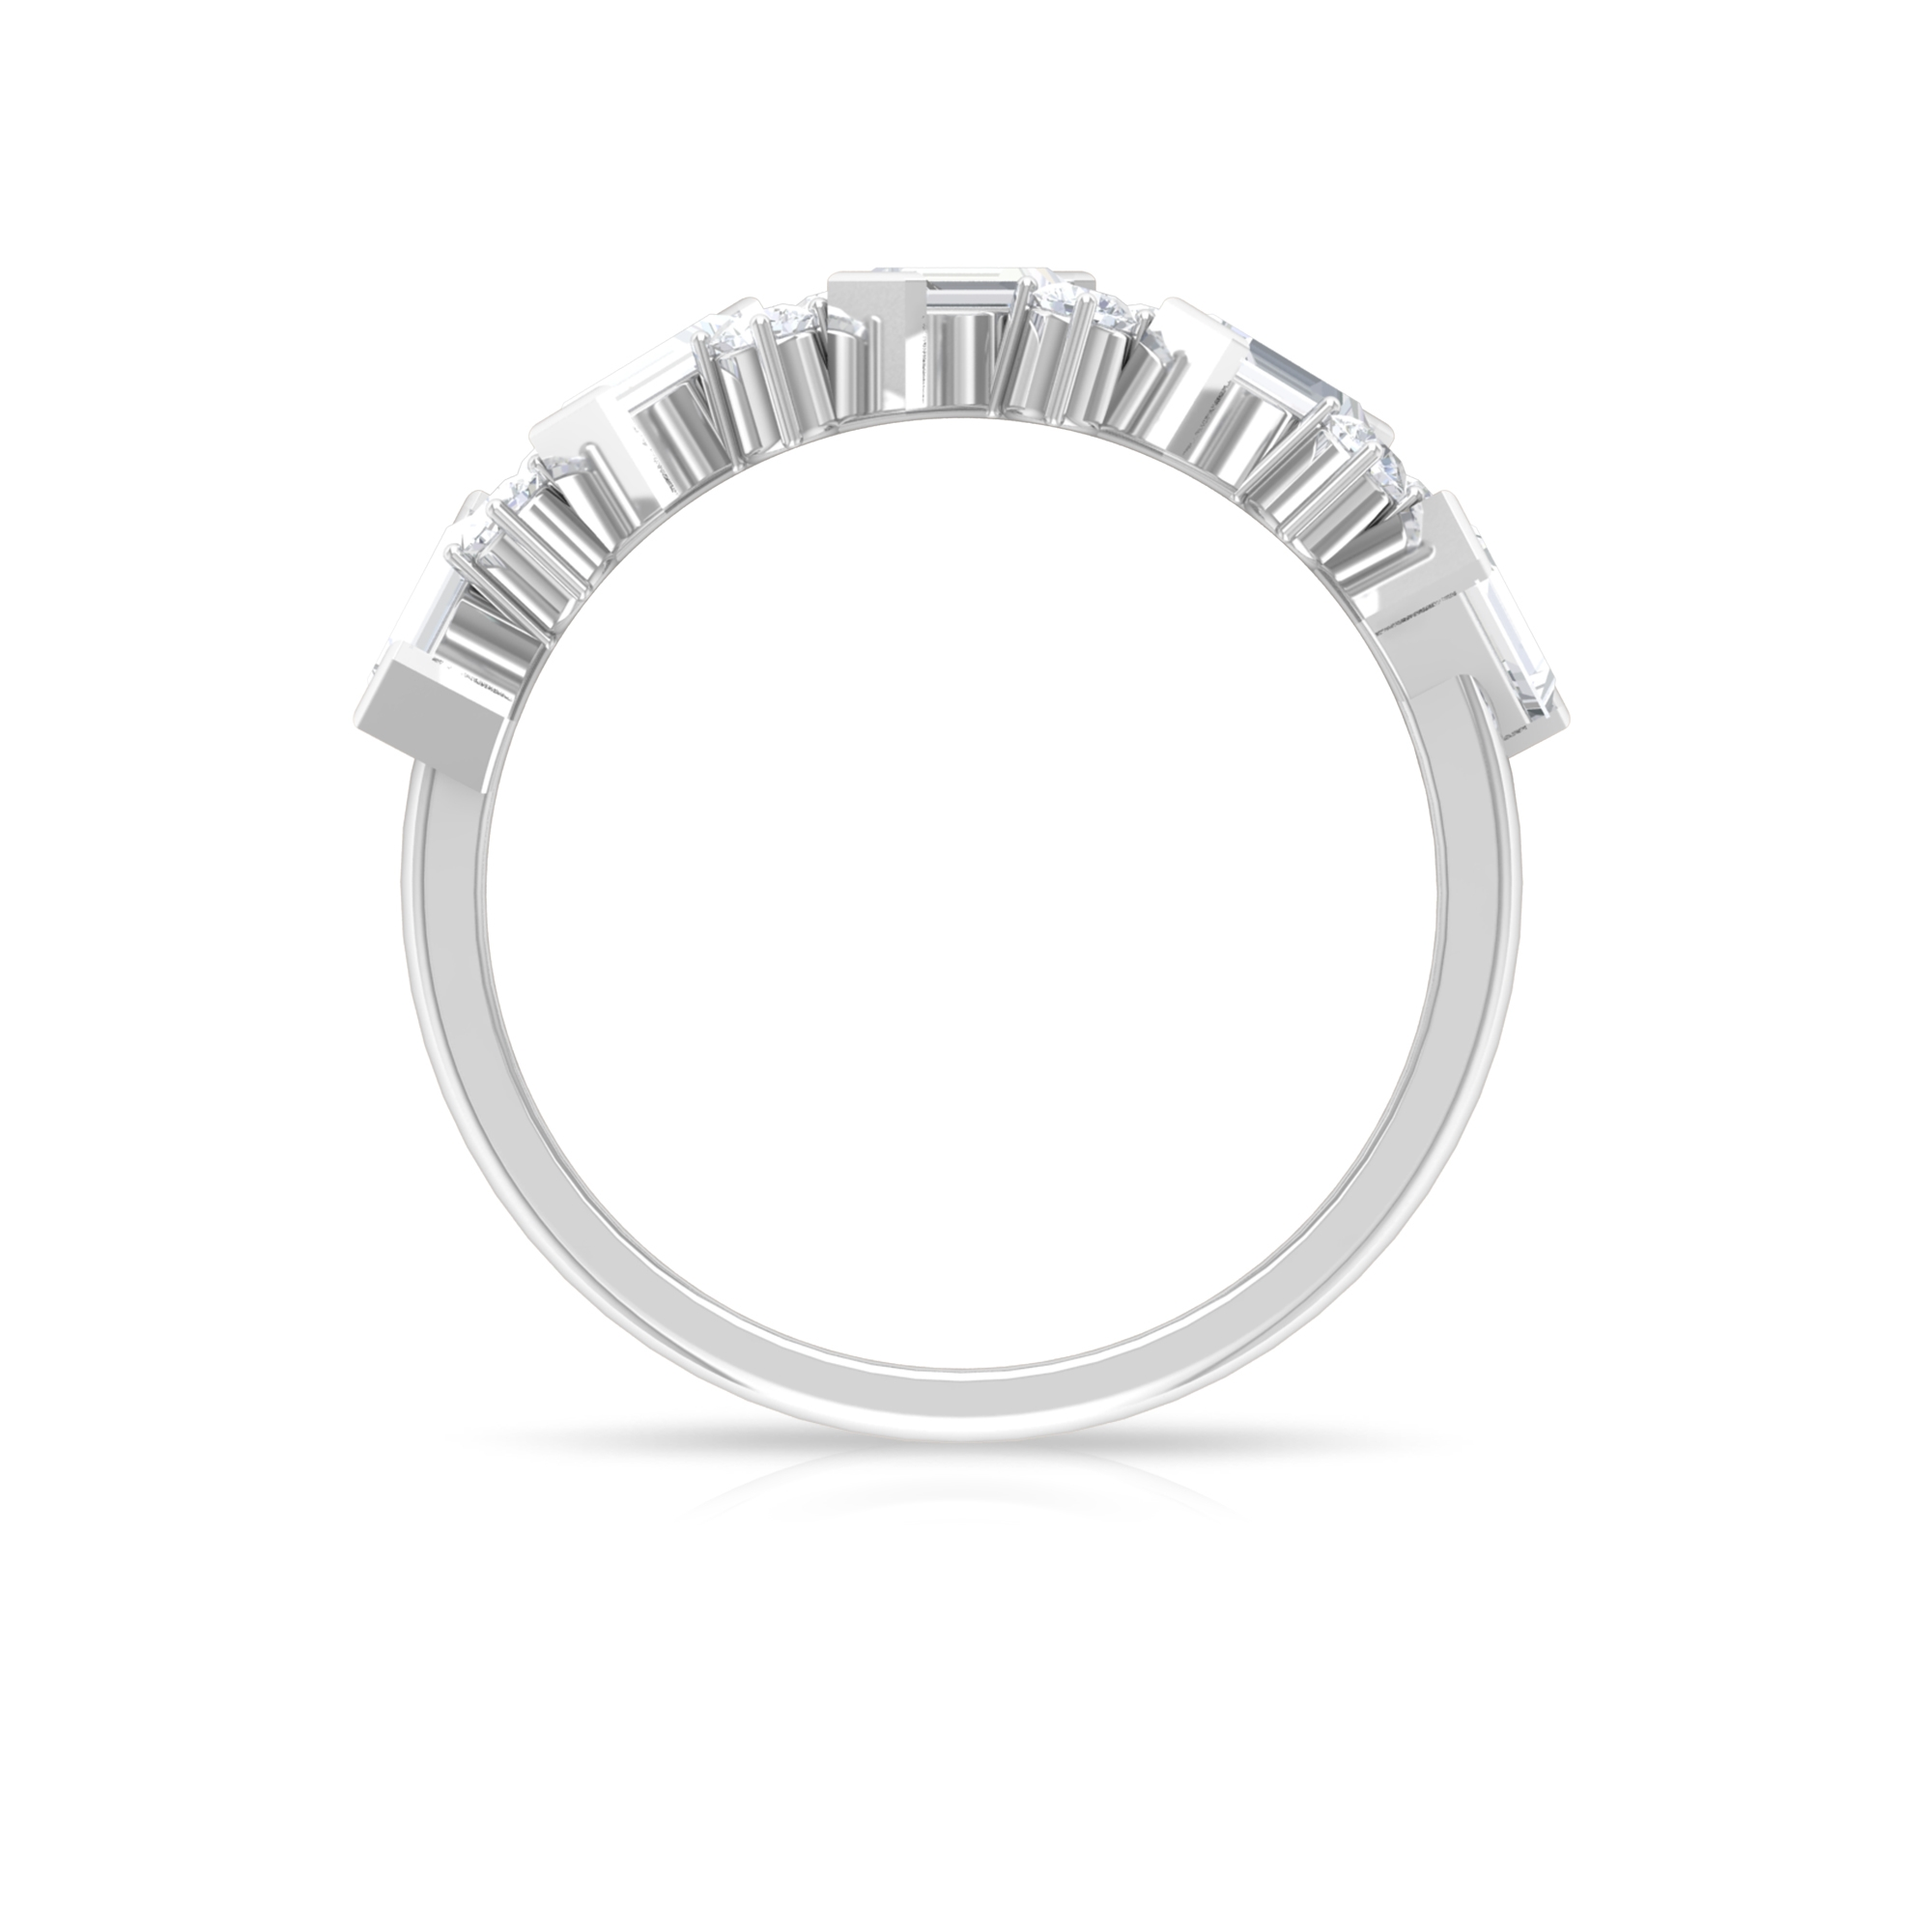 1 CT Round and Baguette Cut Diamond Semi Eternity Ring